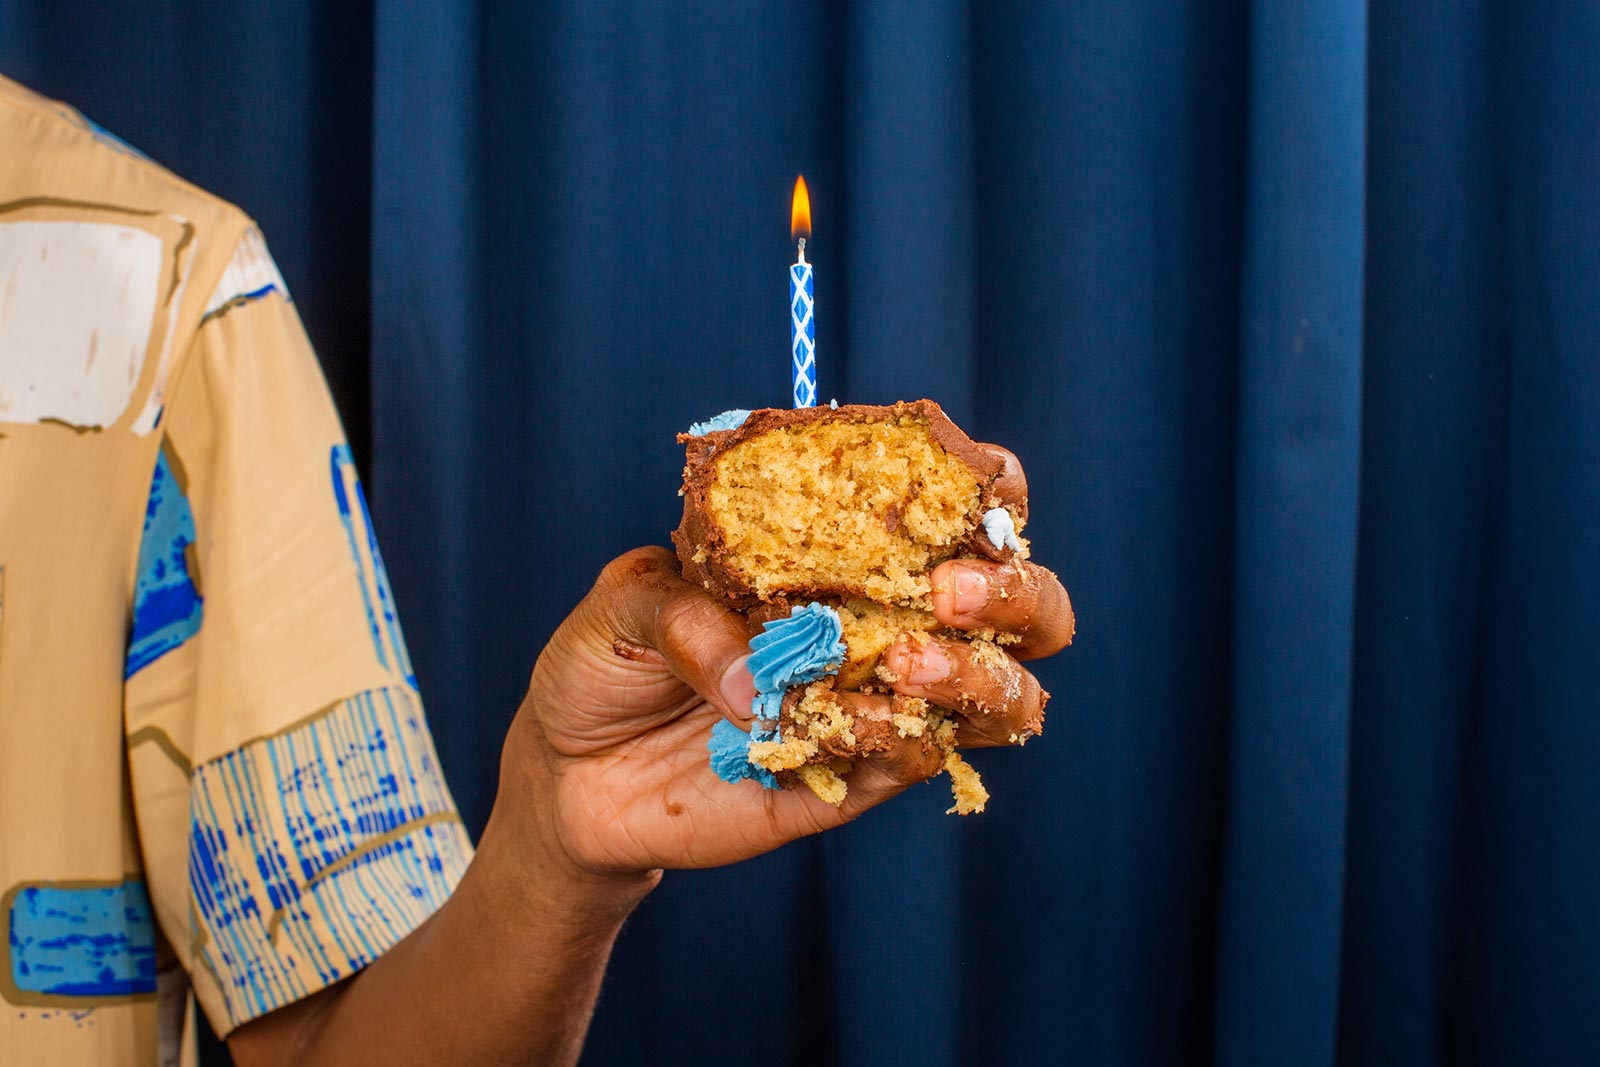 Have your cake and eat it, too, by using these marketing tips from Donald Miller